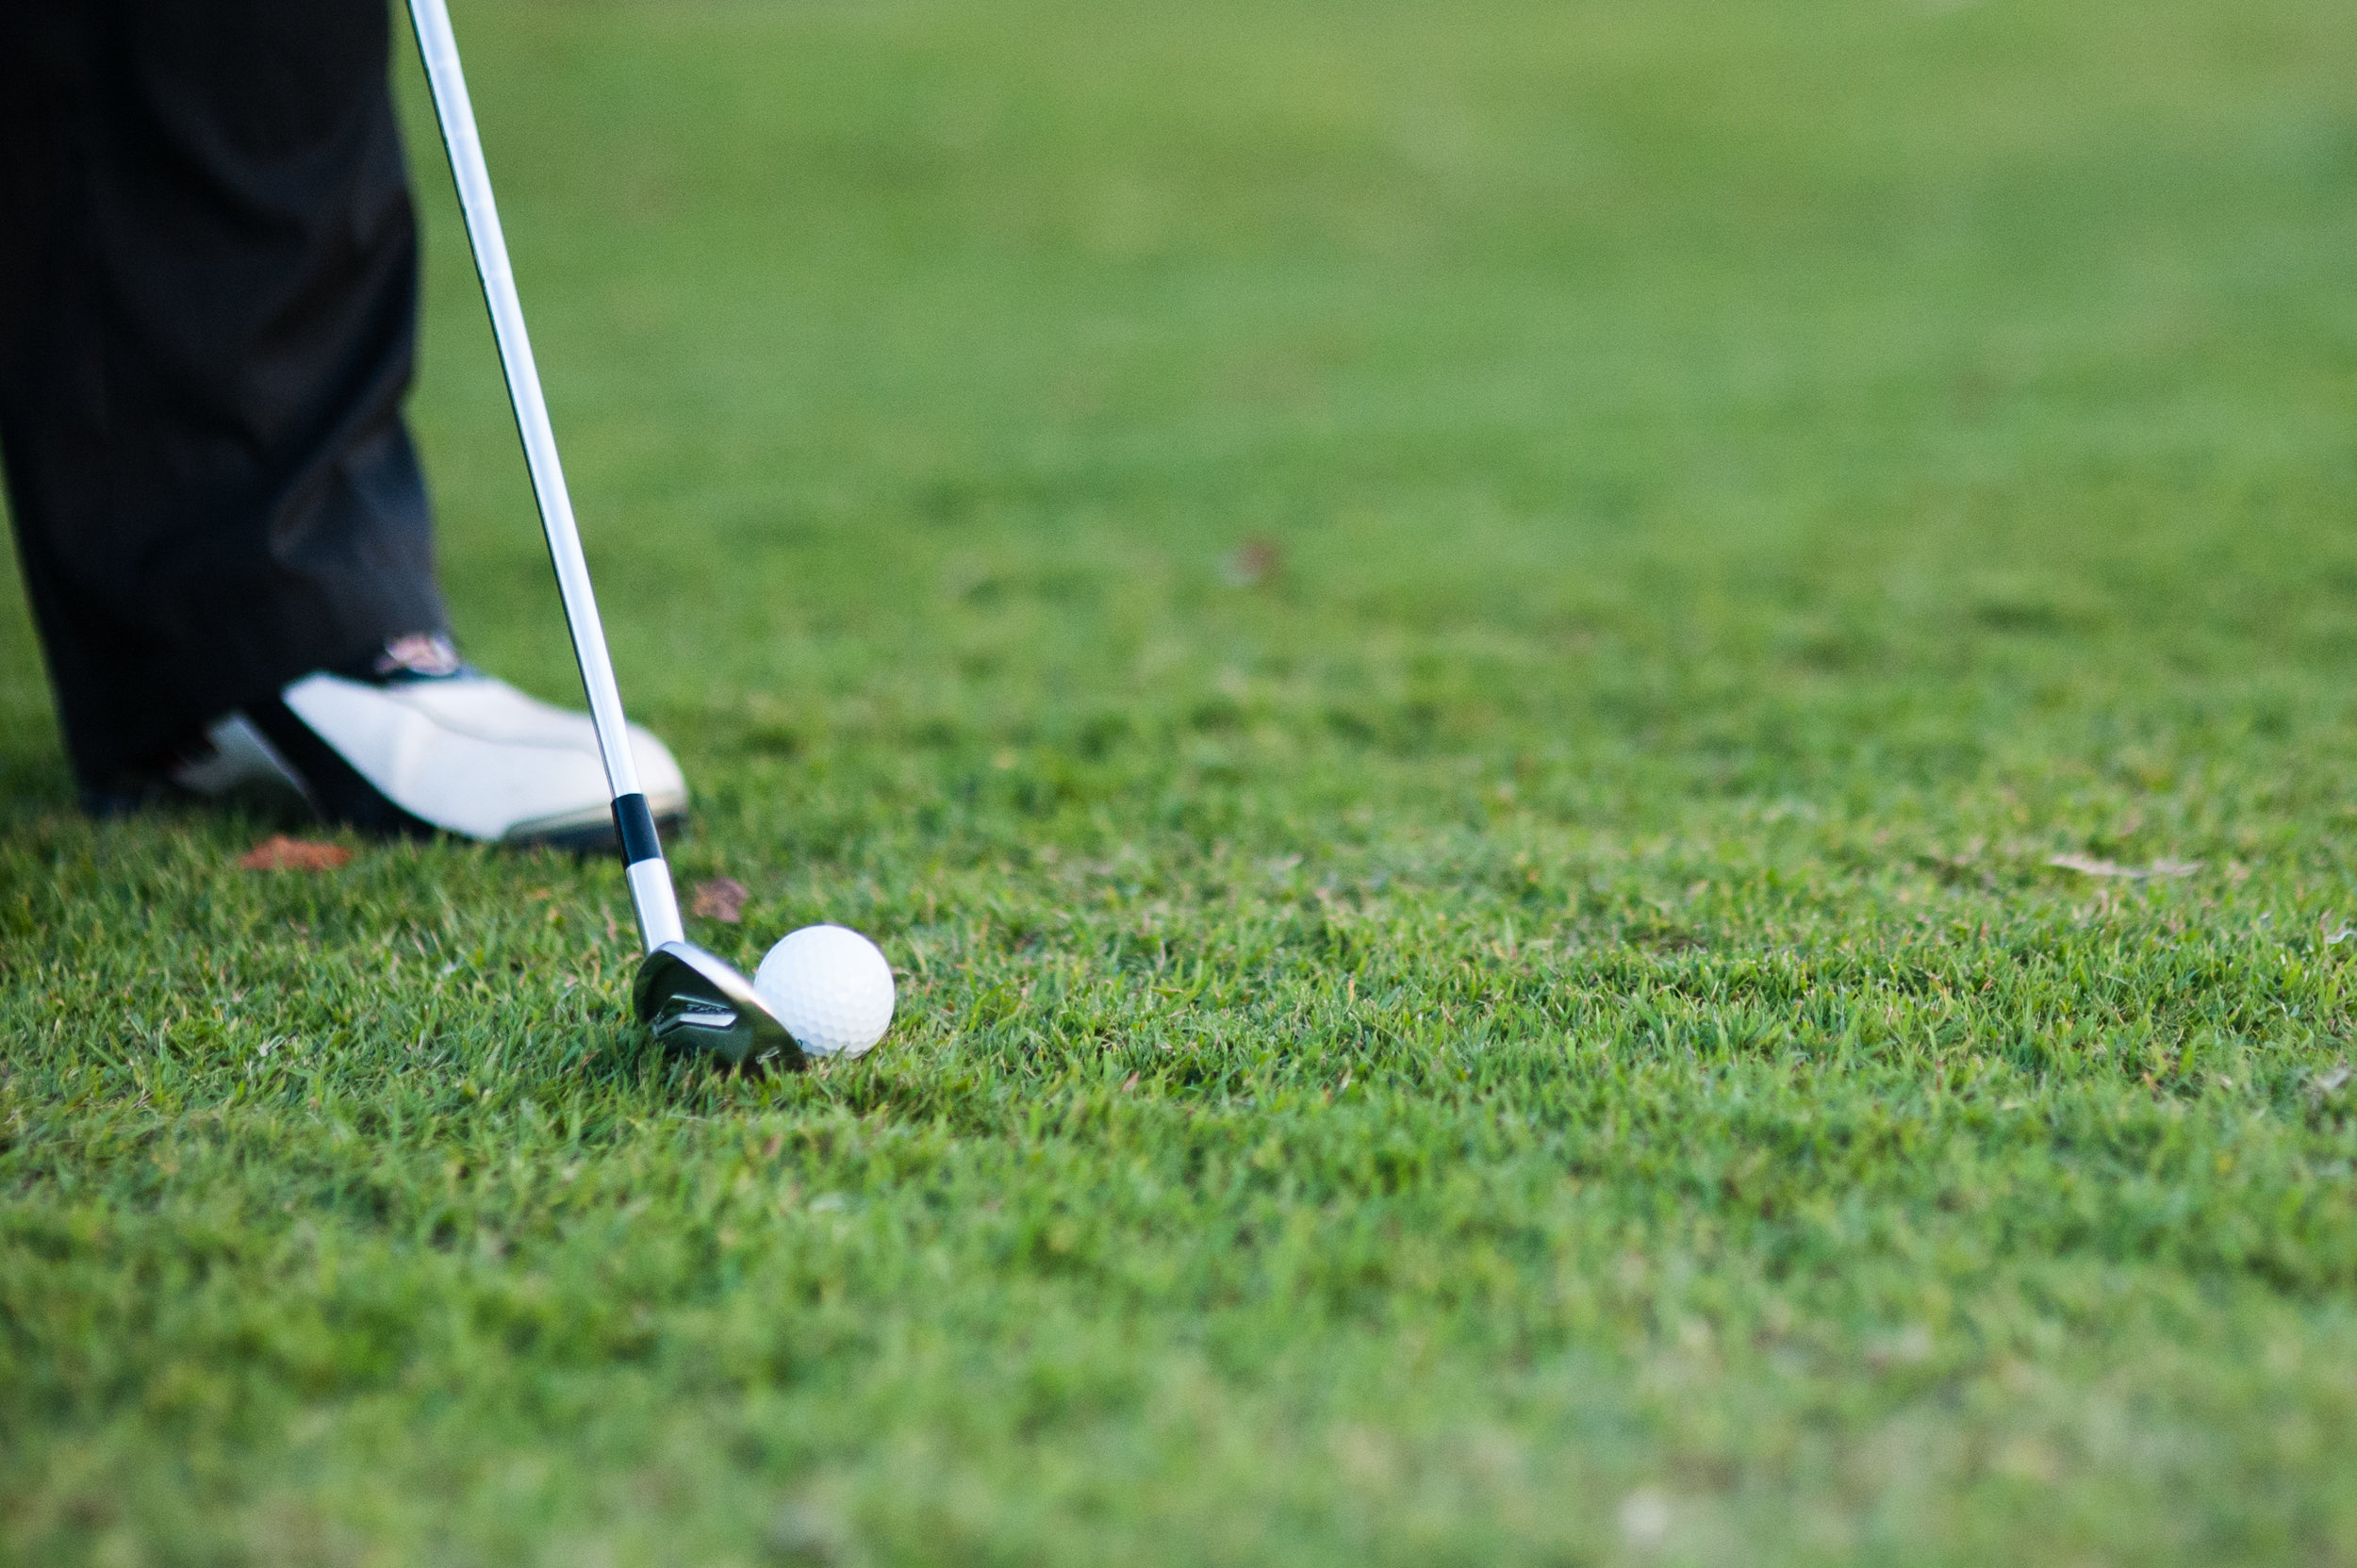 new to golf? -